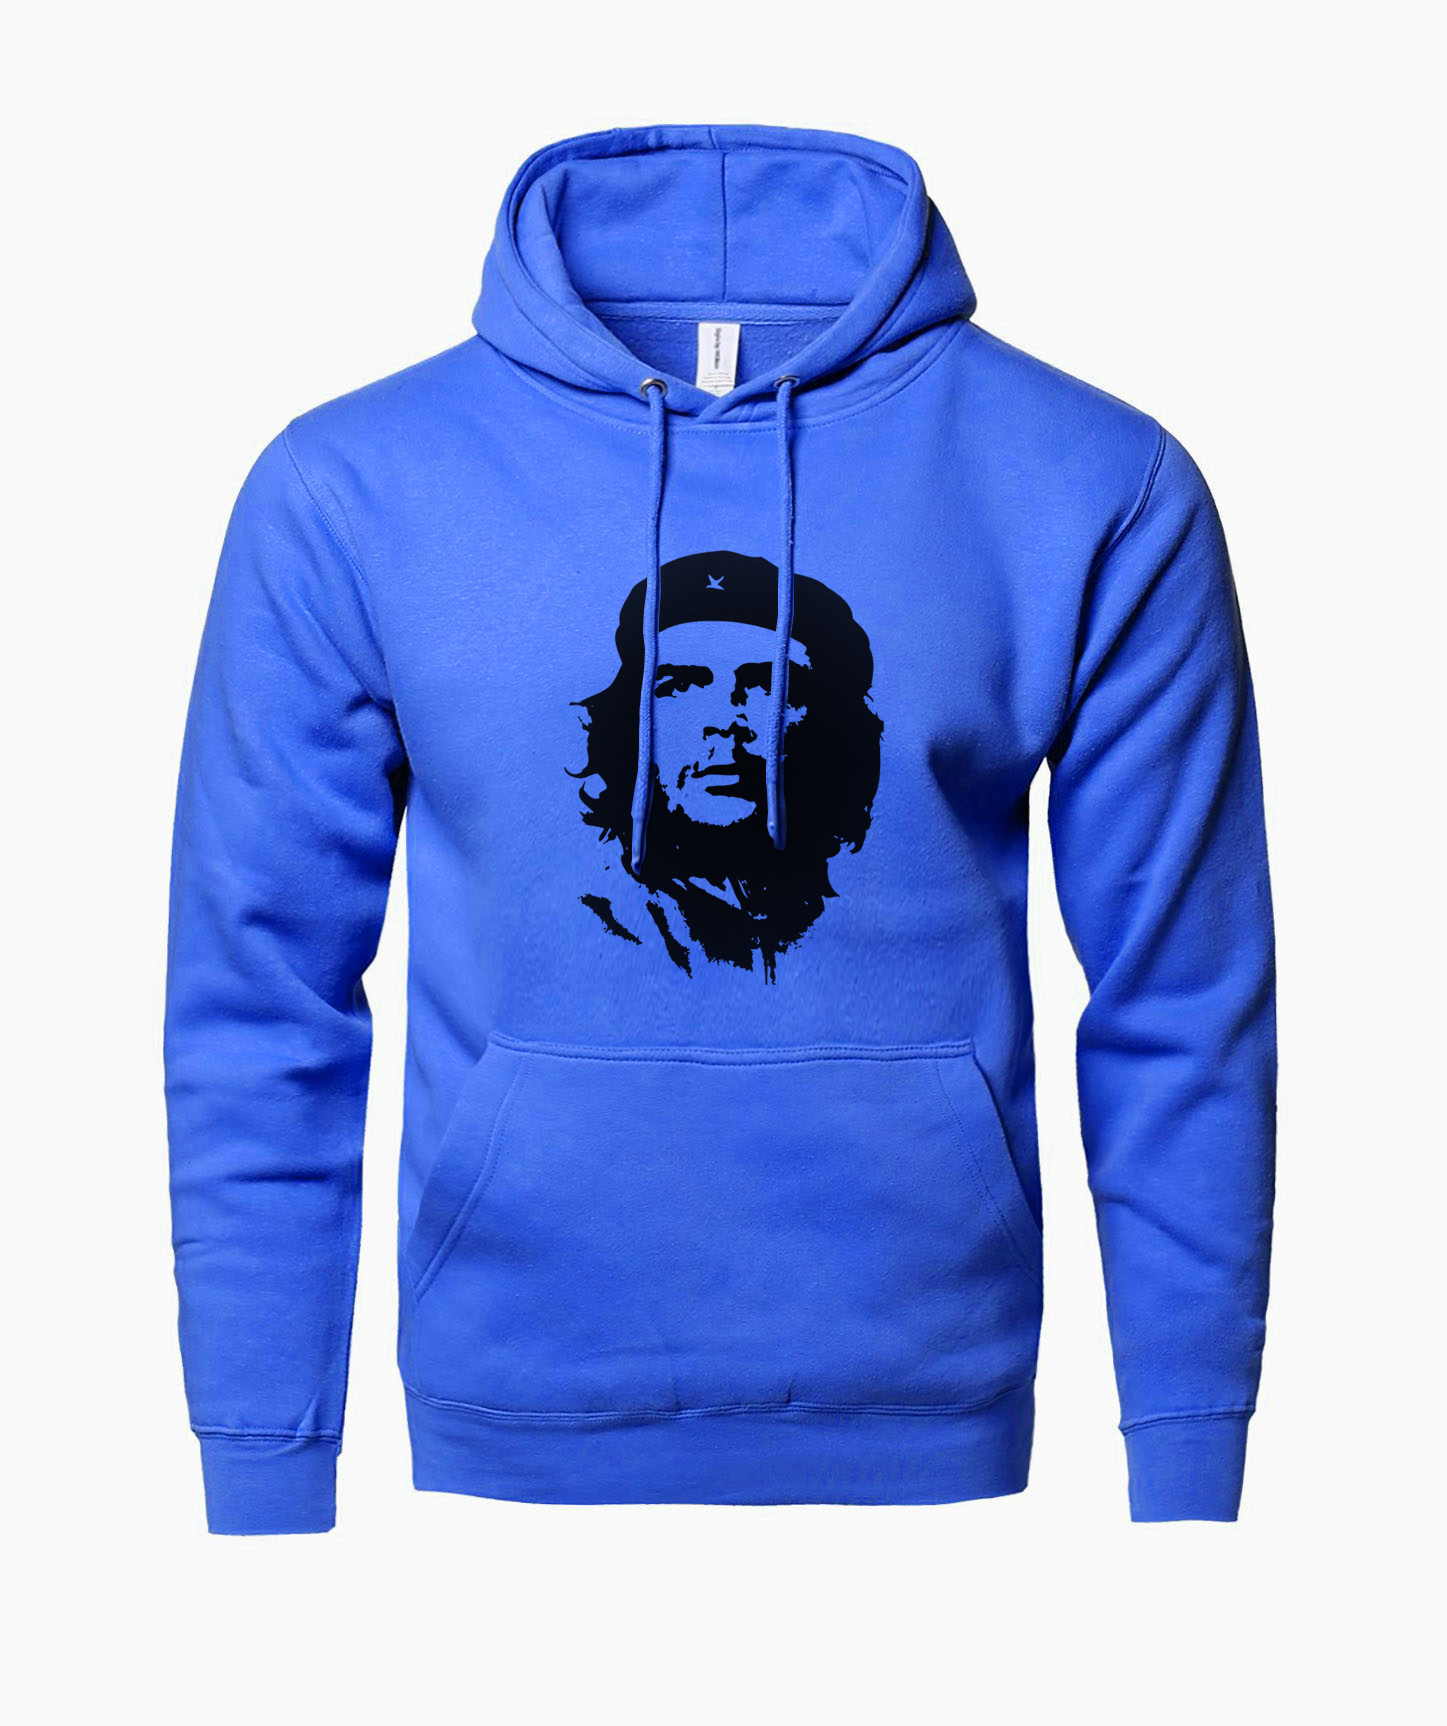 Ernesto Guevara Character Print Fashion Hoodies 2019 Winter Fleece Sweatshirts With Hat Sweatpants Harajuku Crossfit Tracksuits